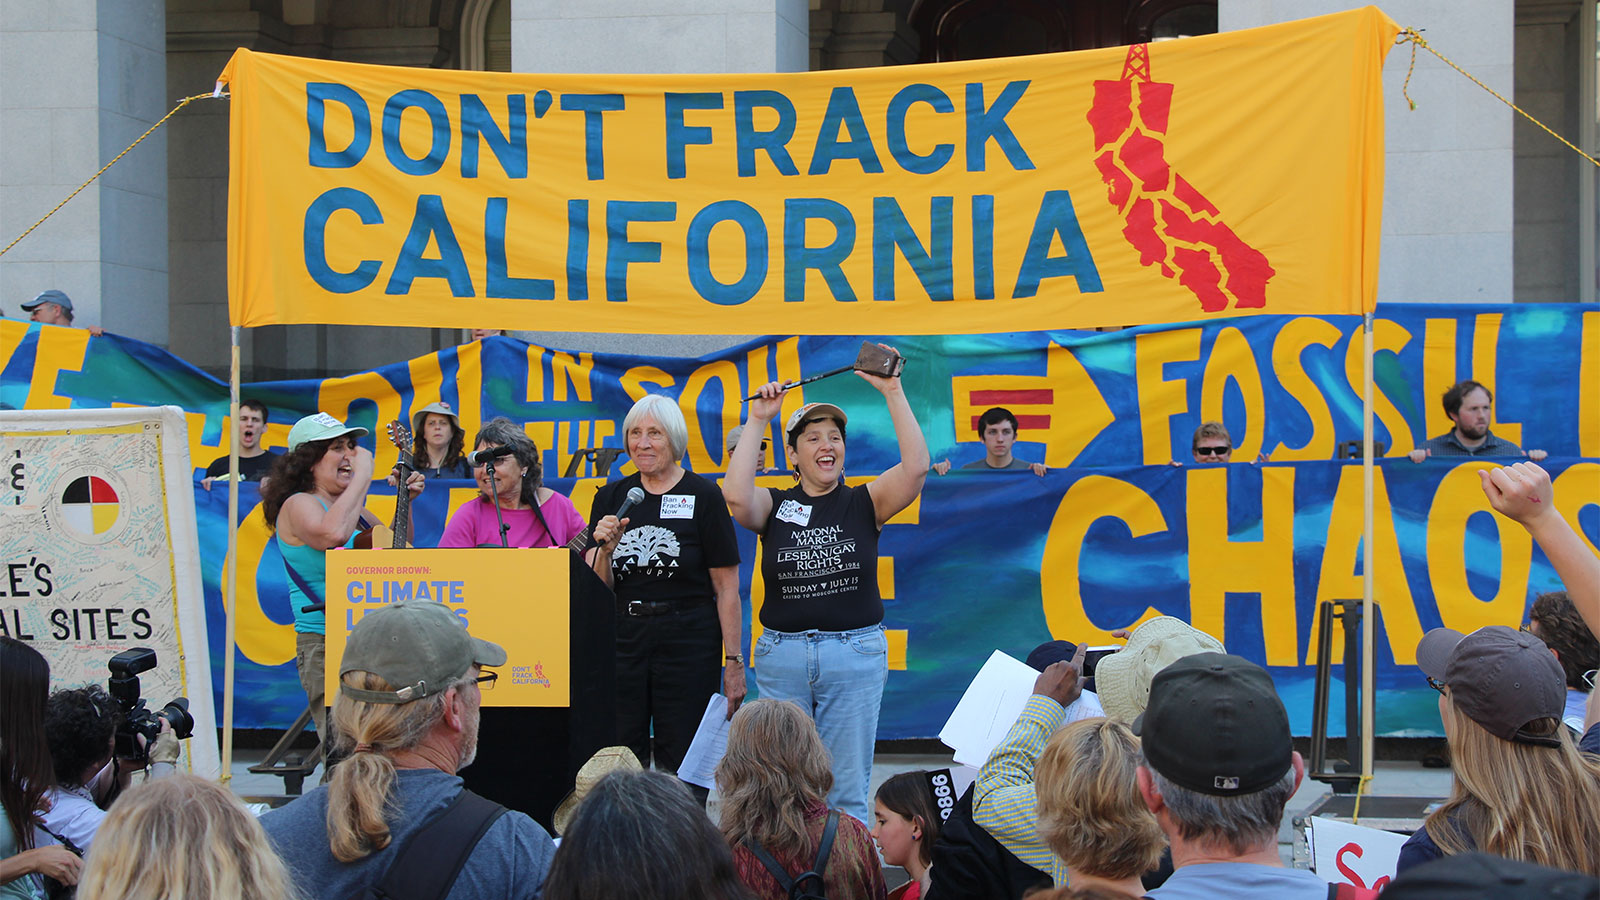 A protest against fracking in California